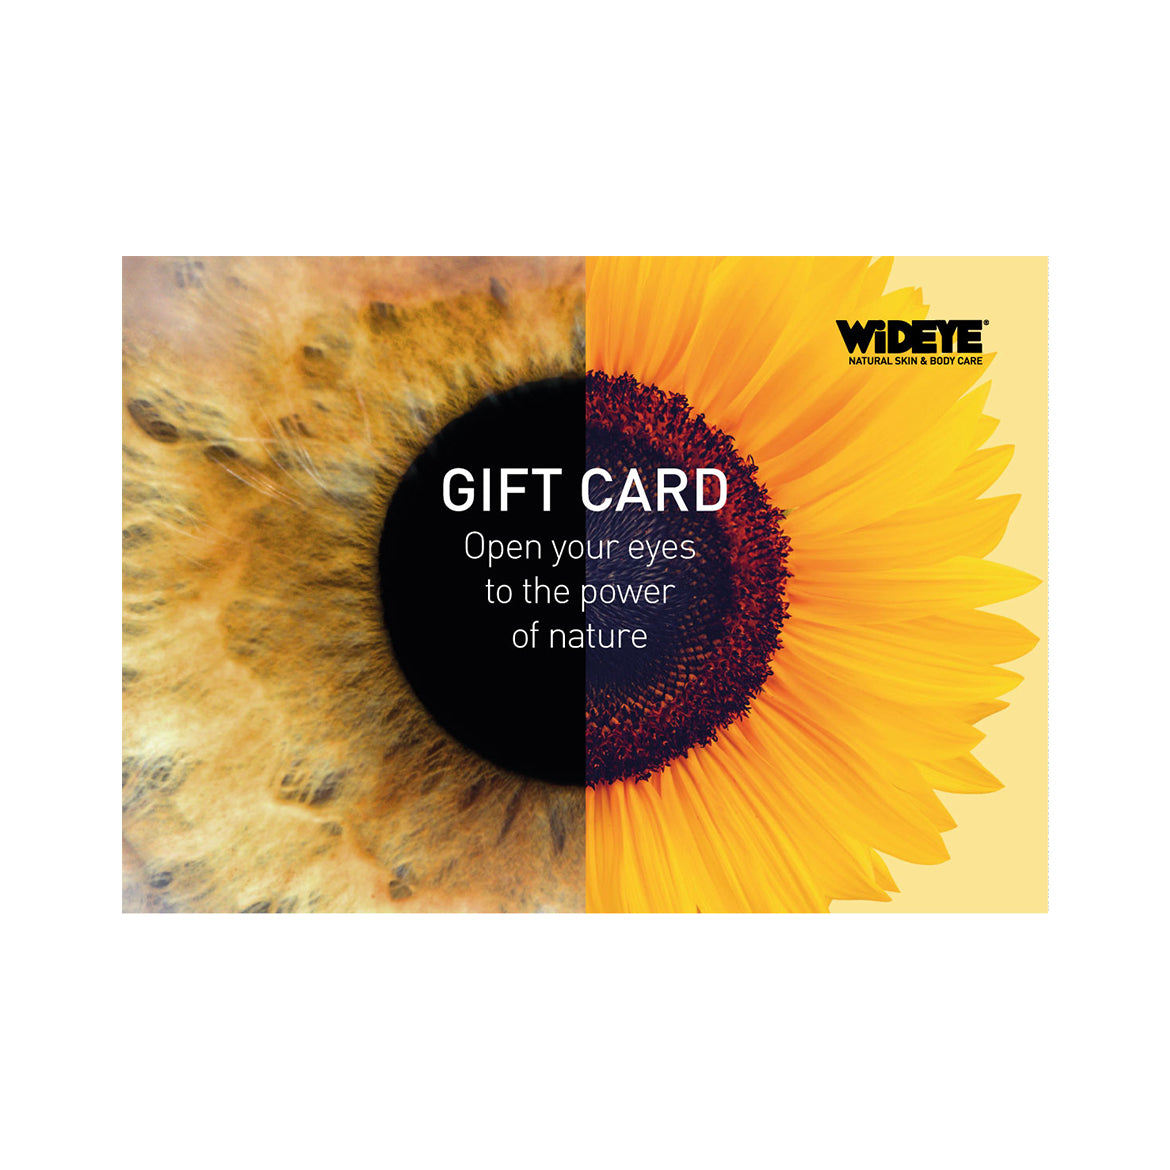 WiDEYE online Gift Card with sunflower and eye logo.